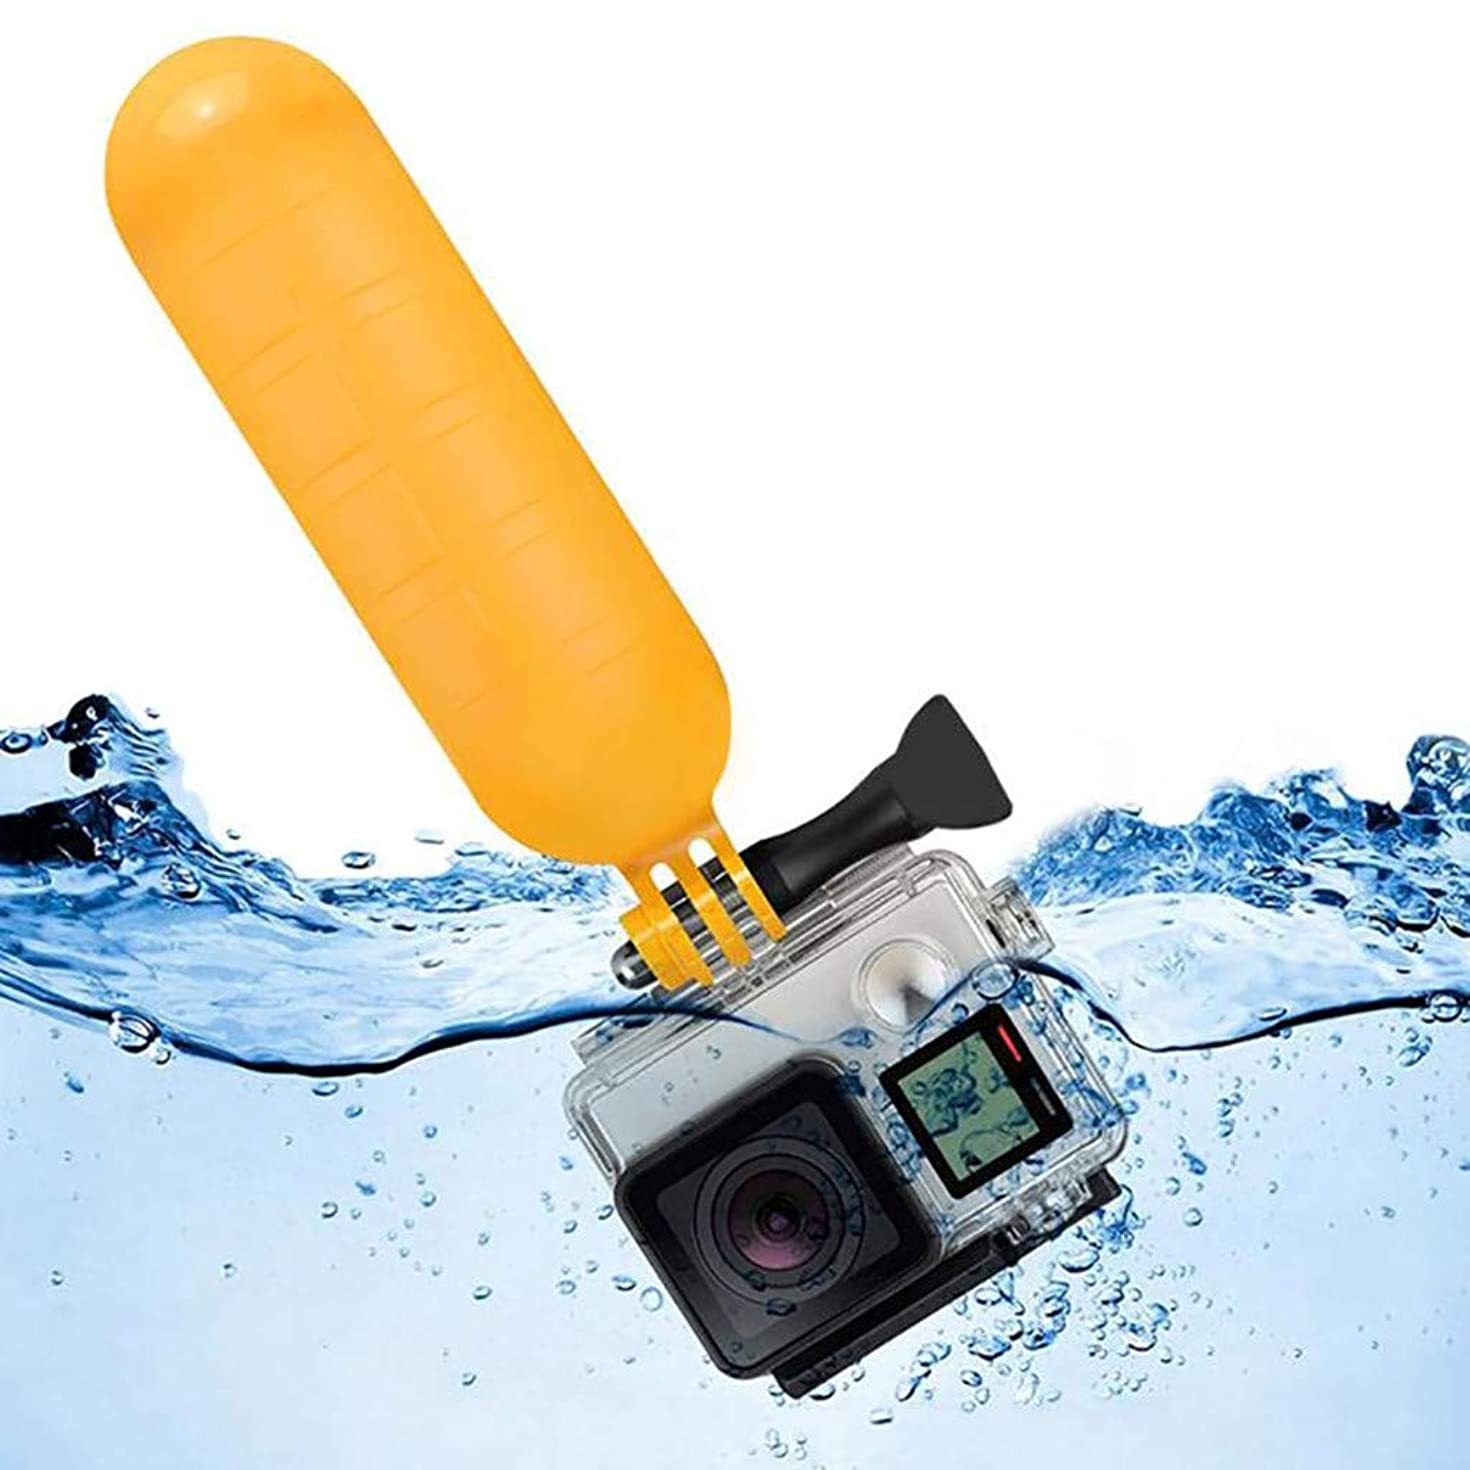 Sodoop Selfie Stick for DJI Osmo Action for GoPro7,Flat Floating Stick Diving Selfie Stick Grip Handle Sport Camera Accessories, Hero Yellow